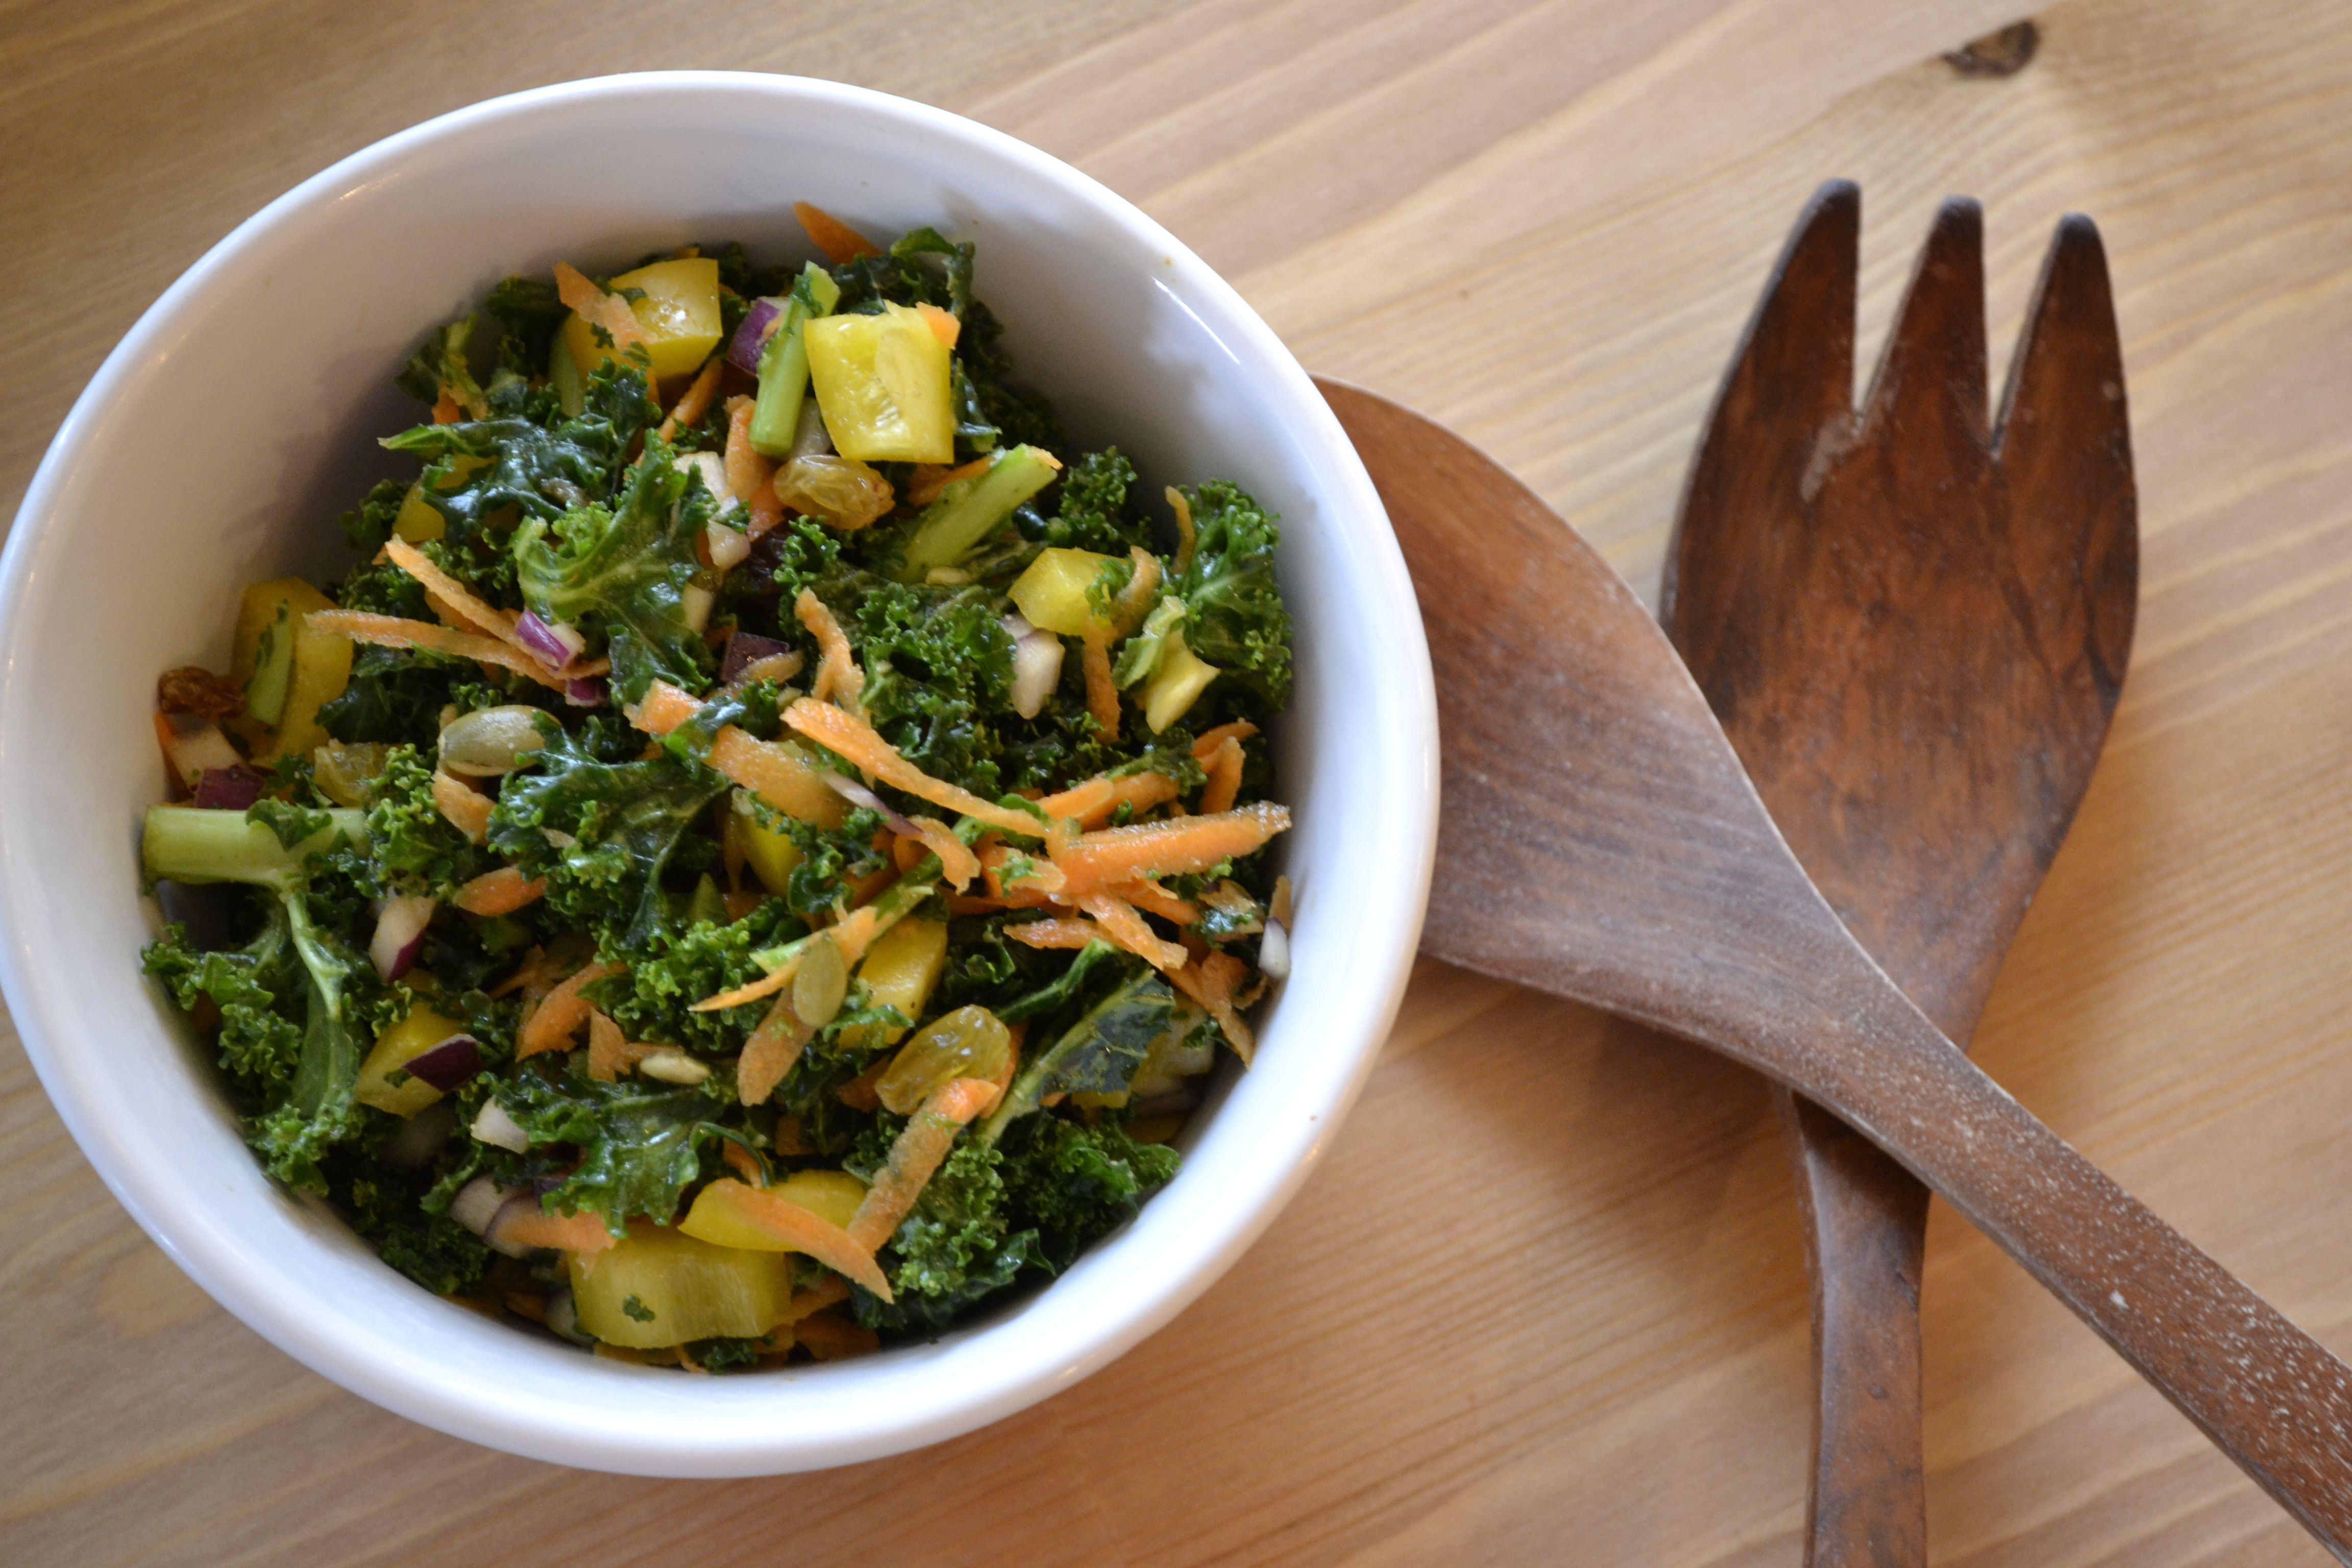 The best kale salad ever! - The Best Kale Salad with tamari, orange juice and cumin dressing.